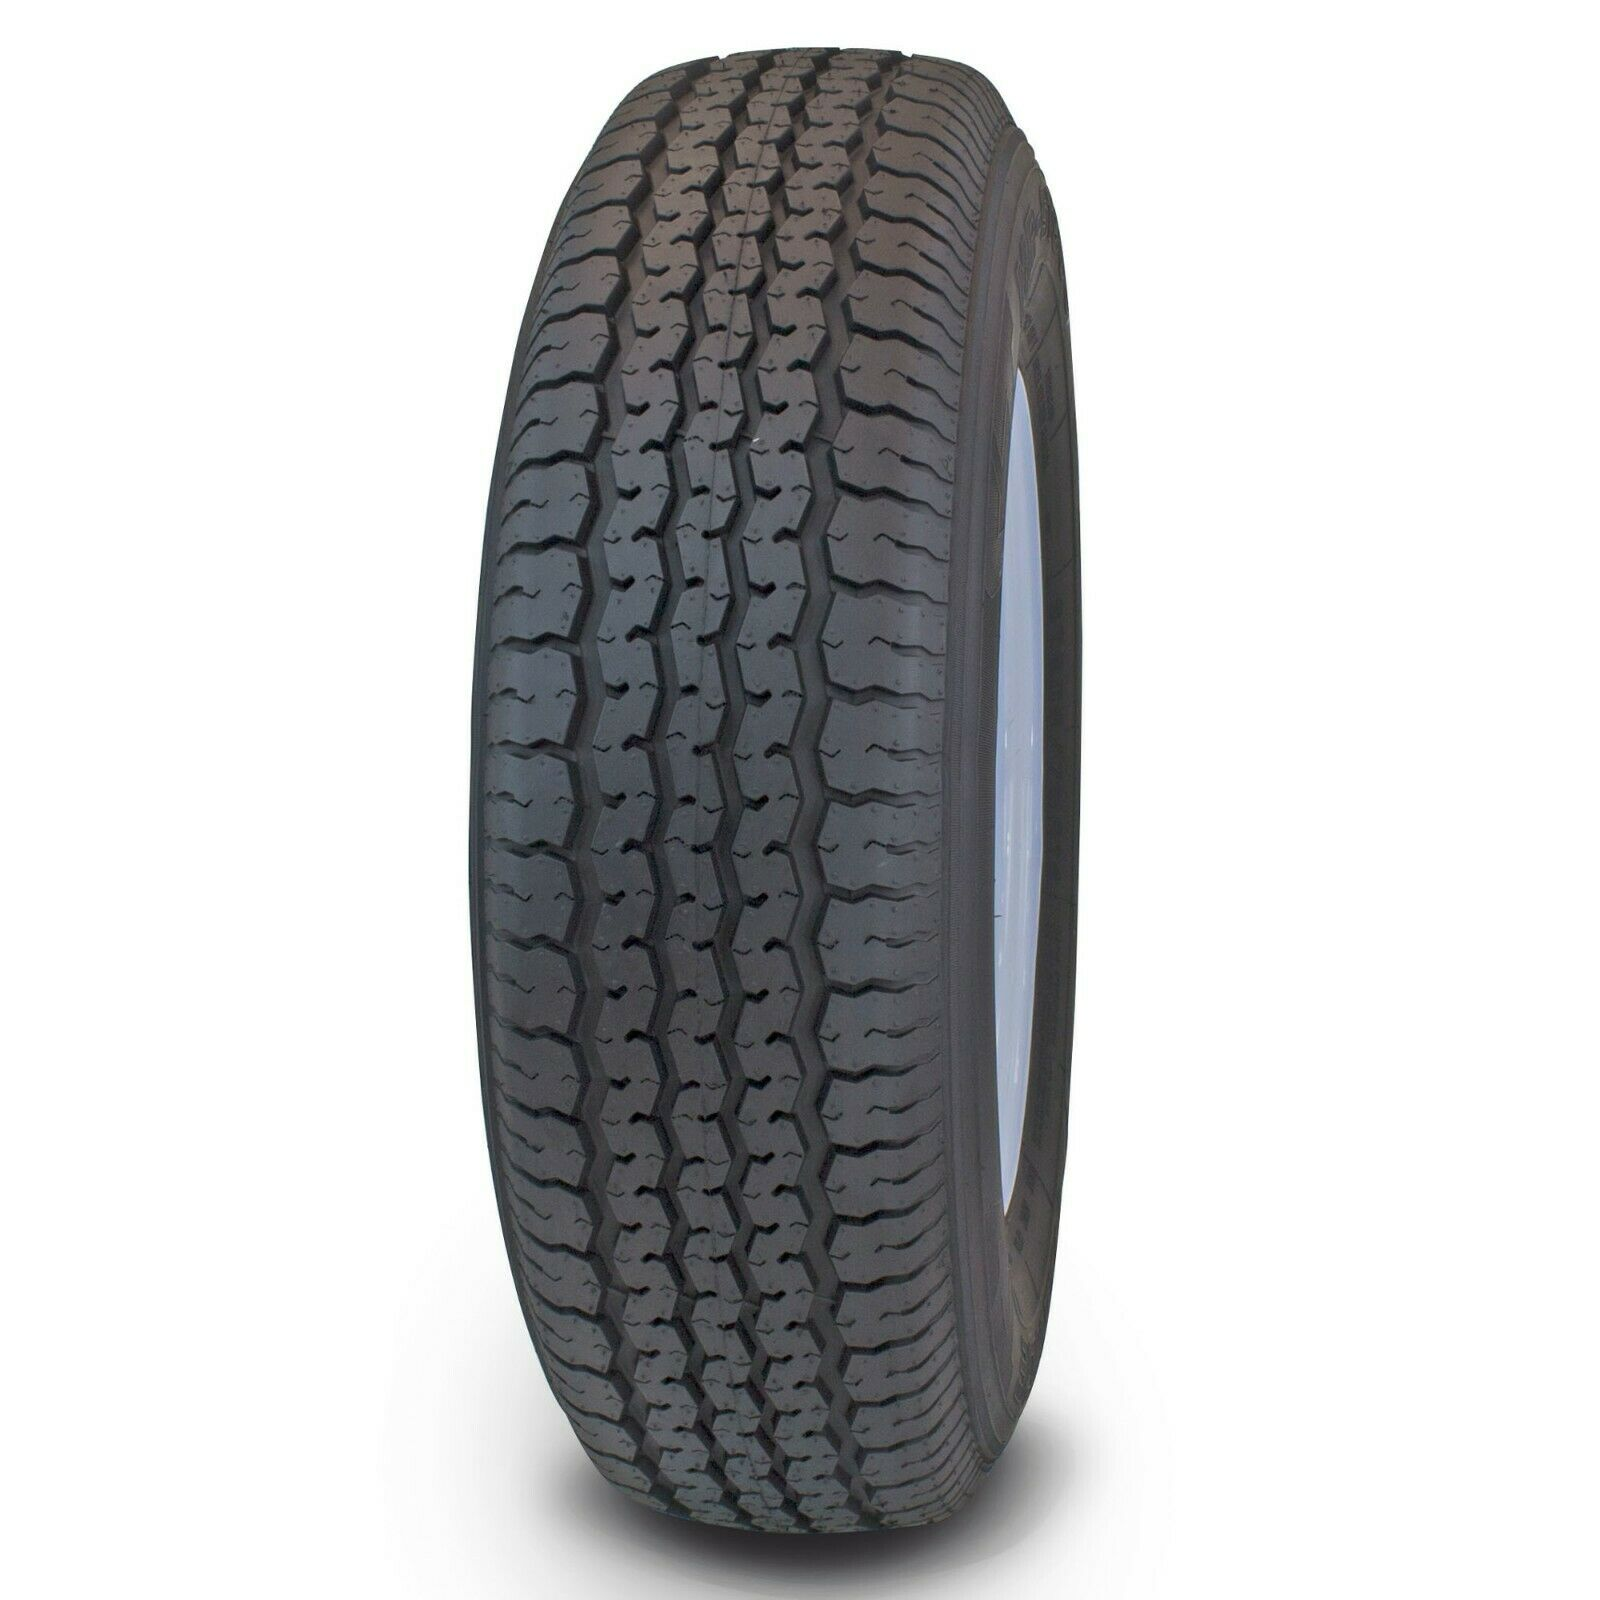 Greenball  Trailer Tire Transmaster EV ST205/75R15 8 Ply Radial (TIRE ONLY) NEW